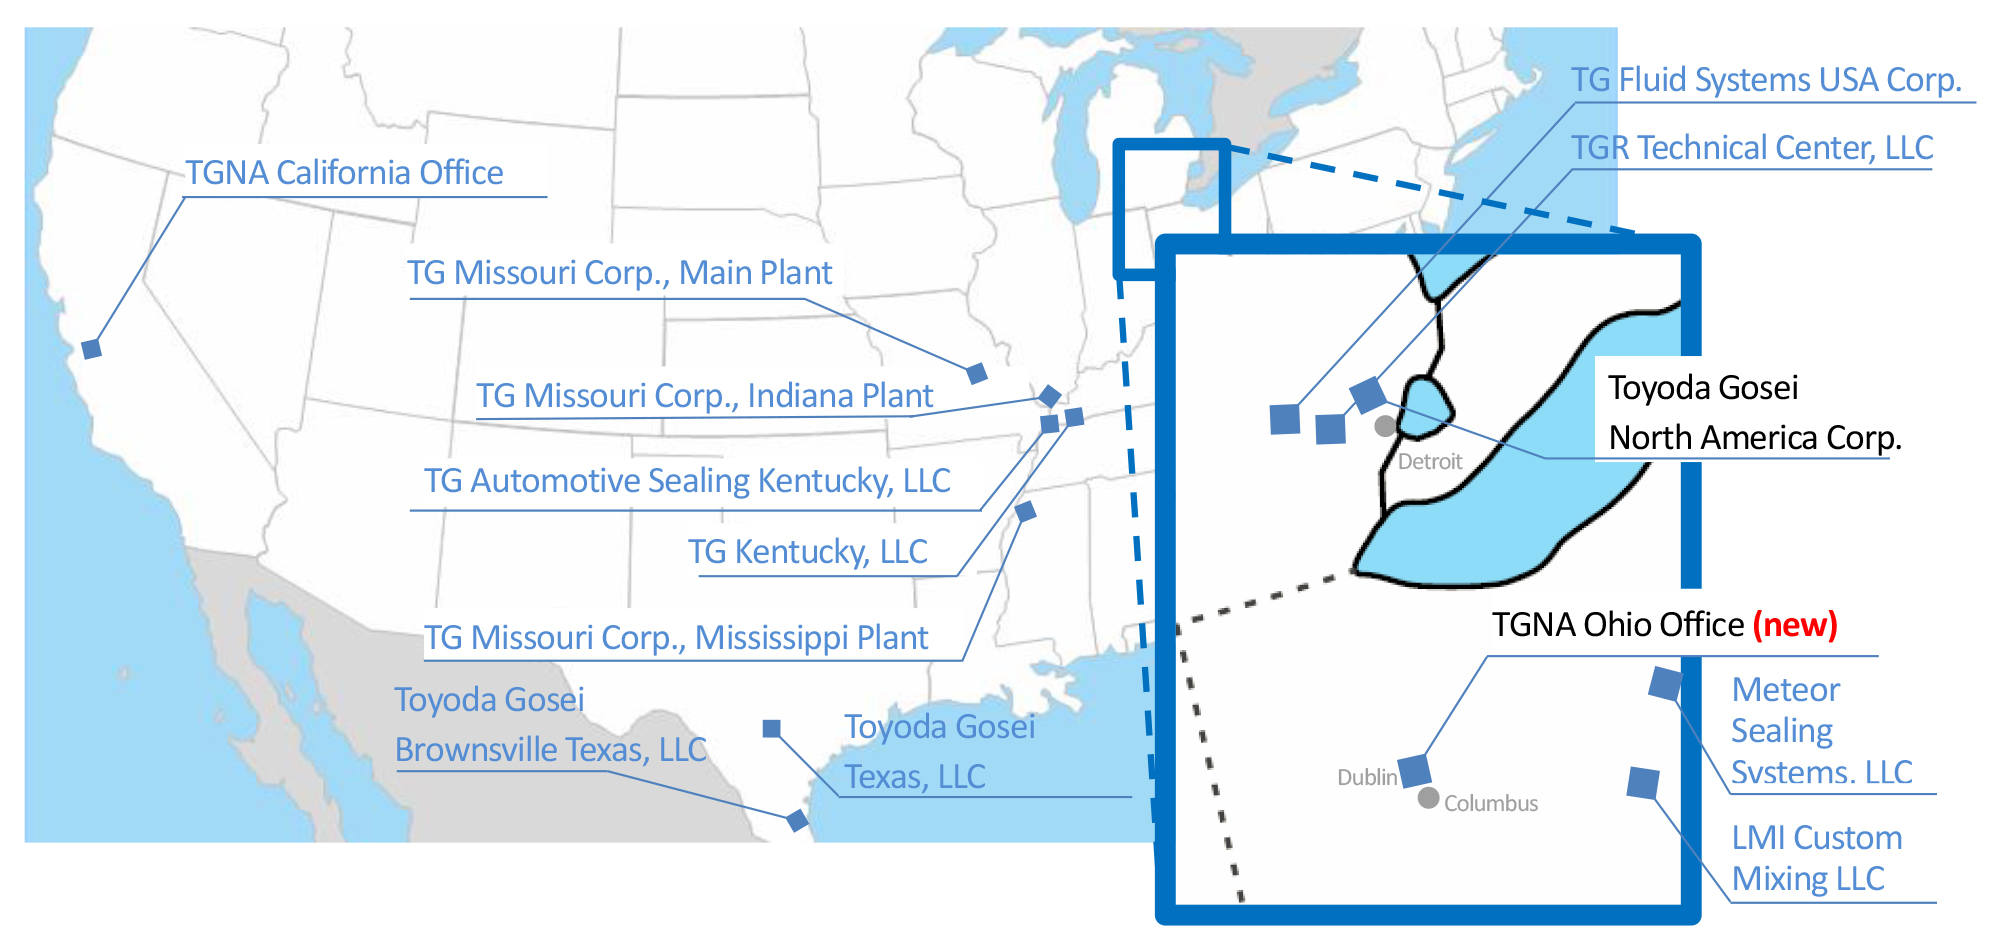 Engineering, sales, and manufacturing locations of Toyoda Gosei in USA (Source: Toyoda Gosei)